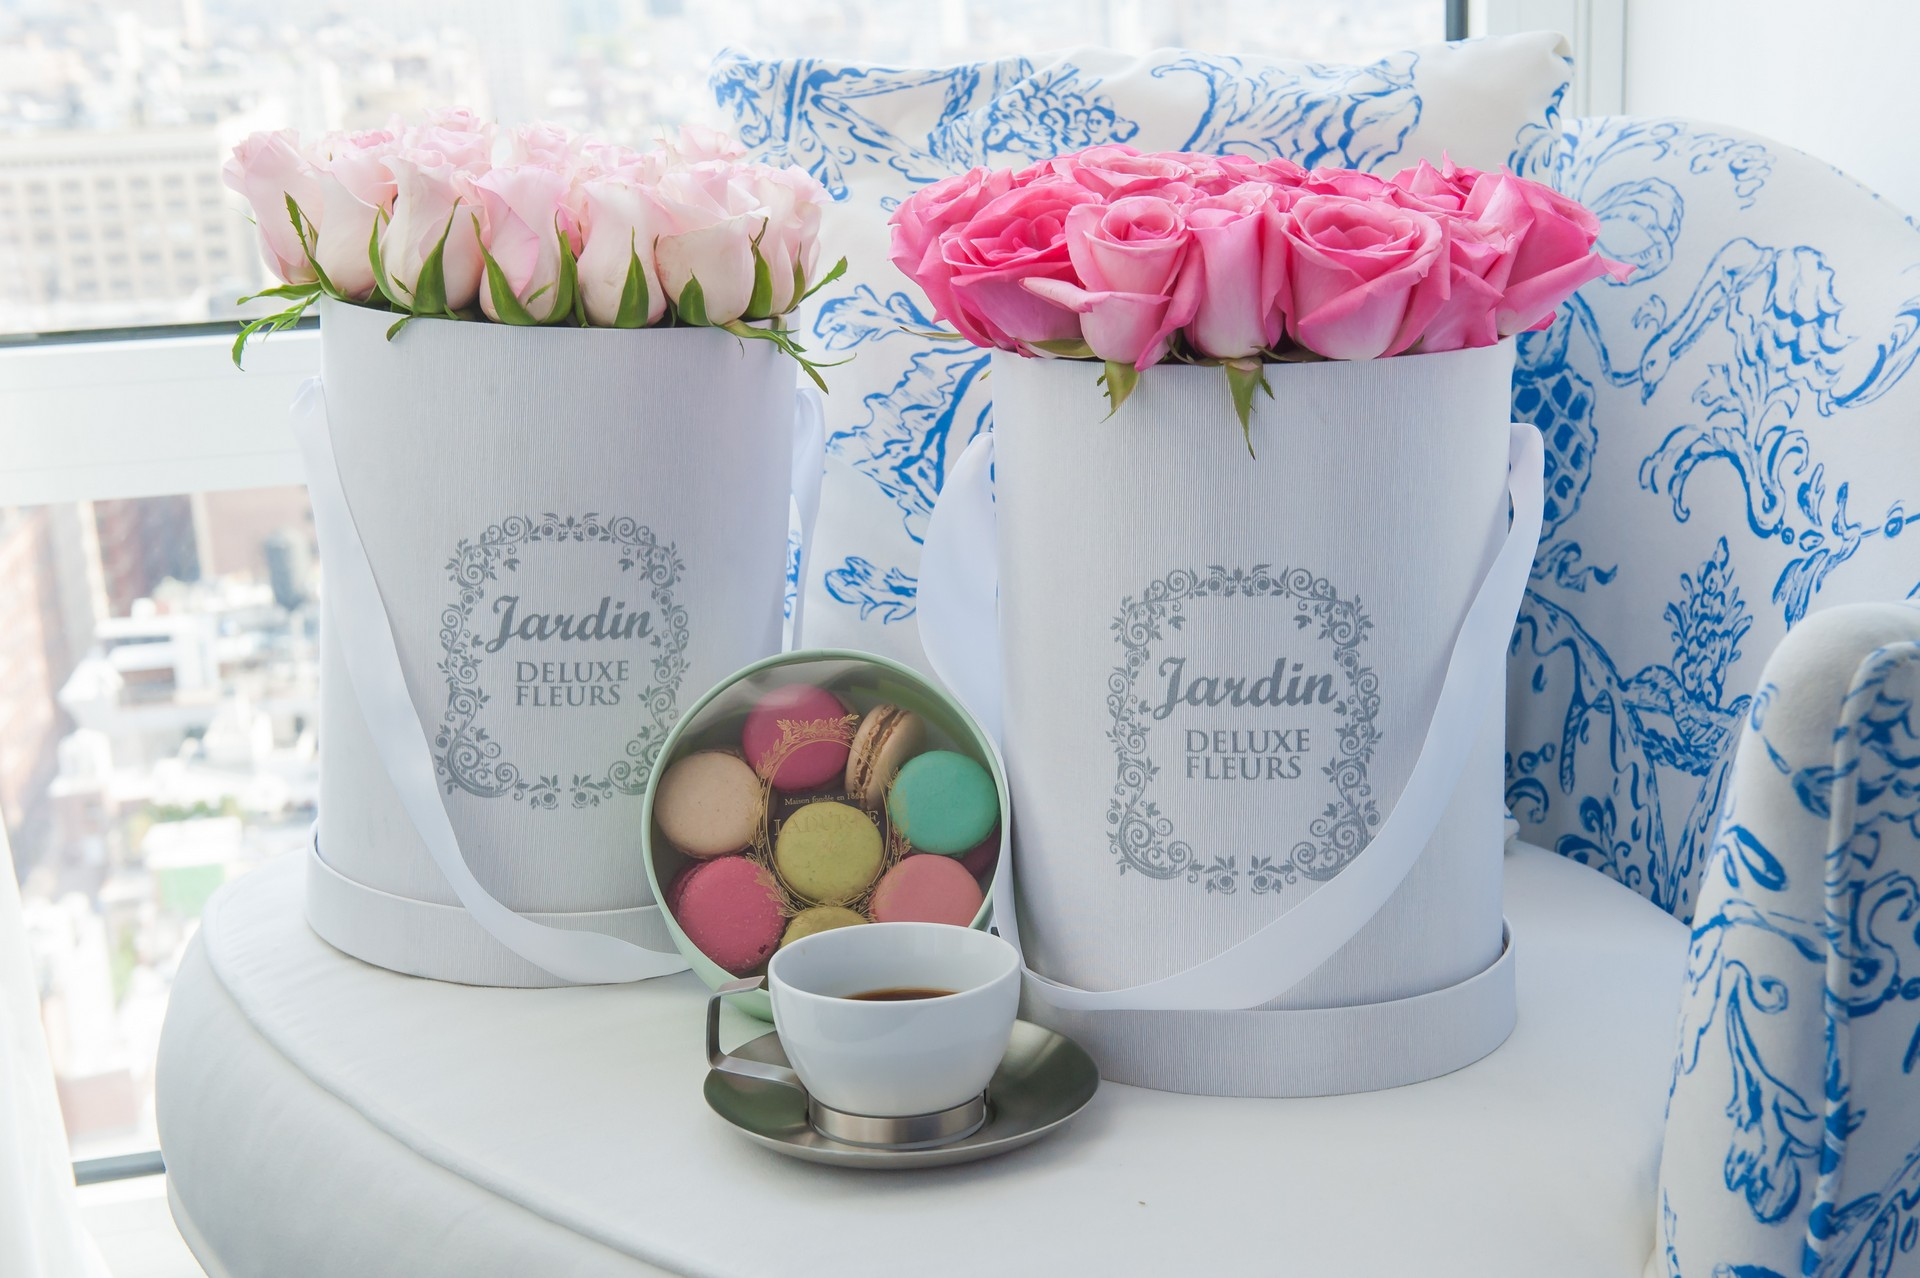 Bringing the french luxury experience to america one for Jardin deluxe fleurs